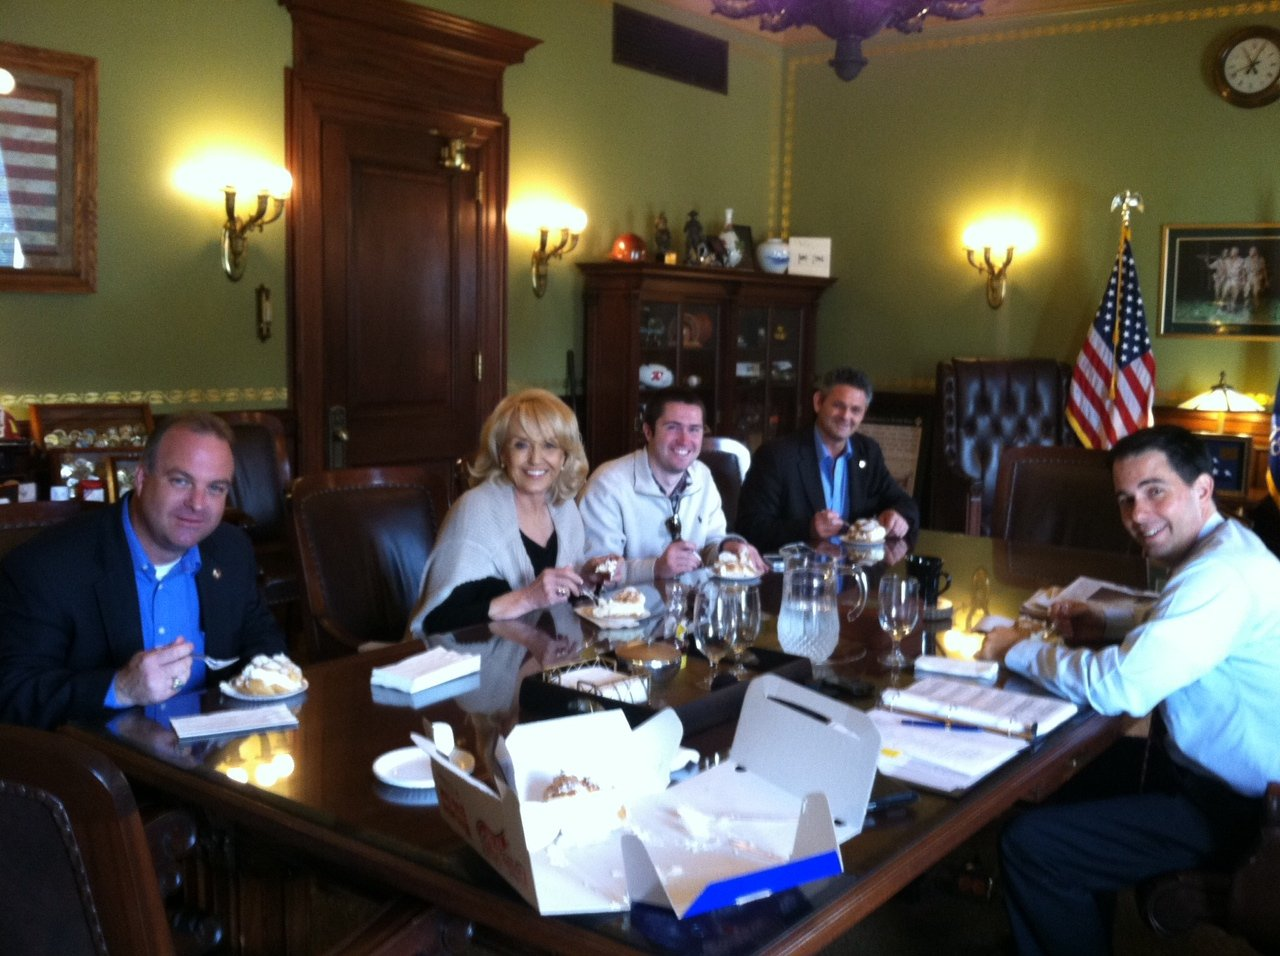 Arizona Gov. Jan Brewer at the Wisconsin State Capitol in Madison.